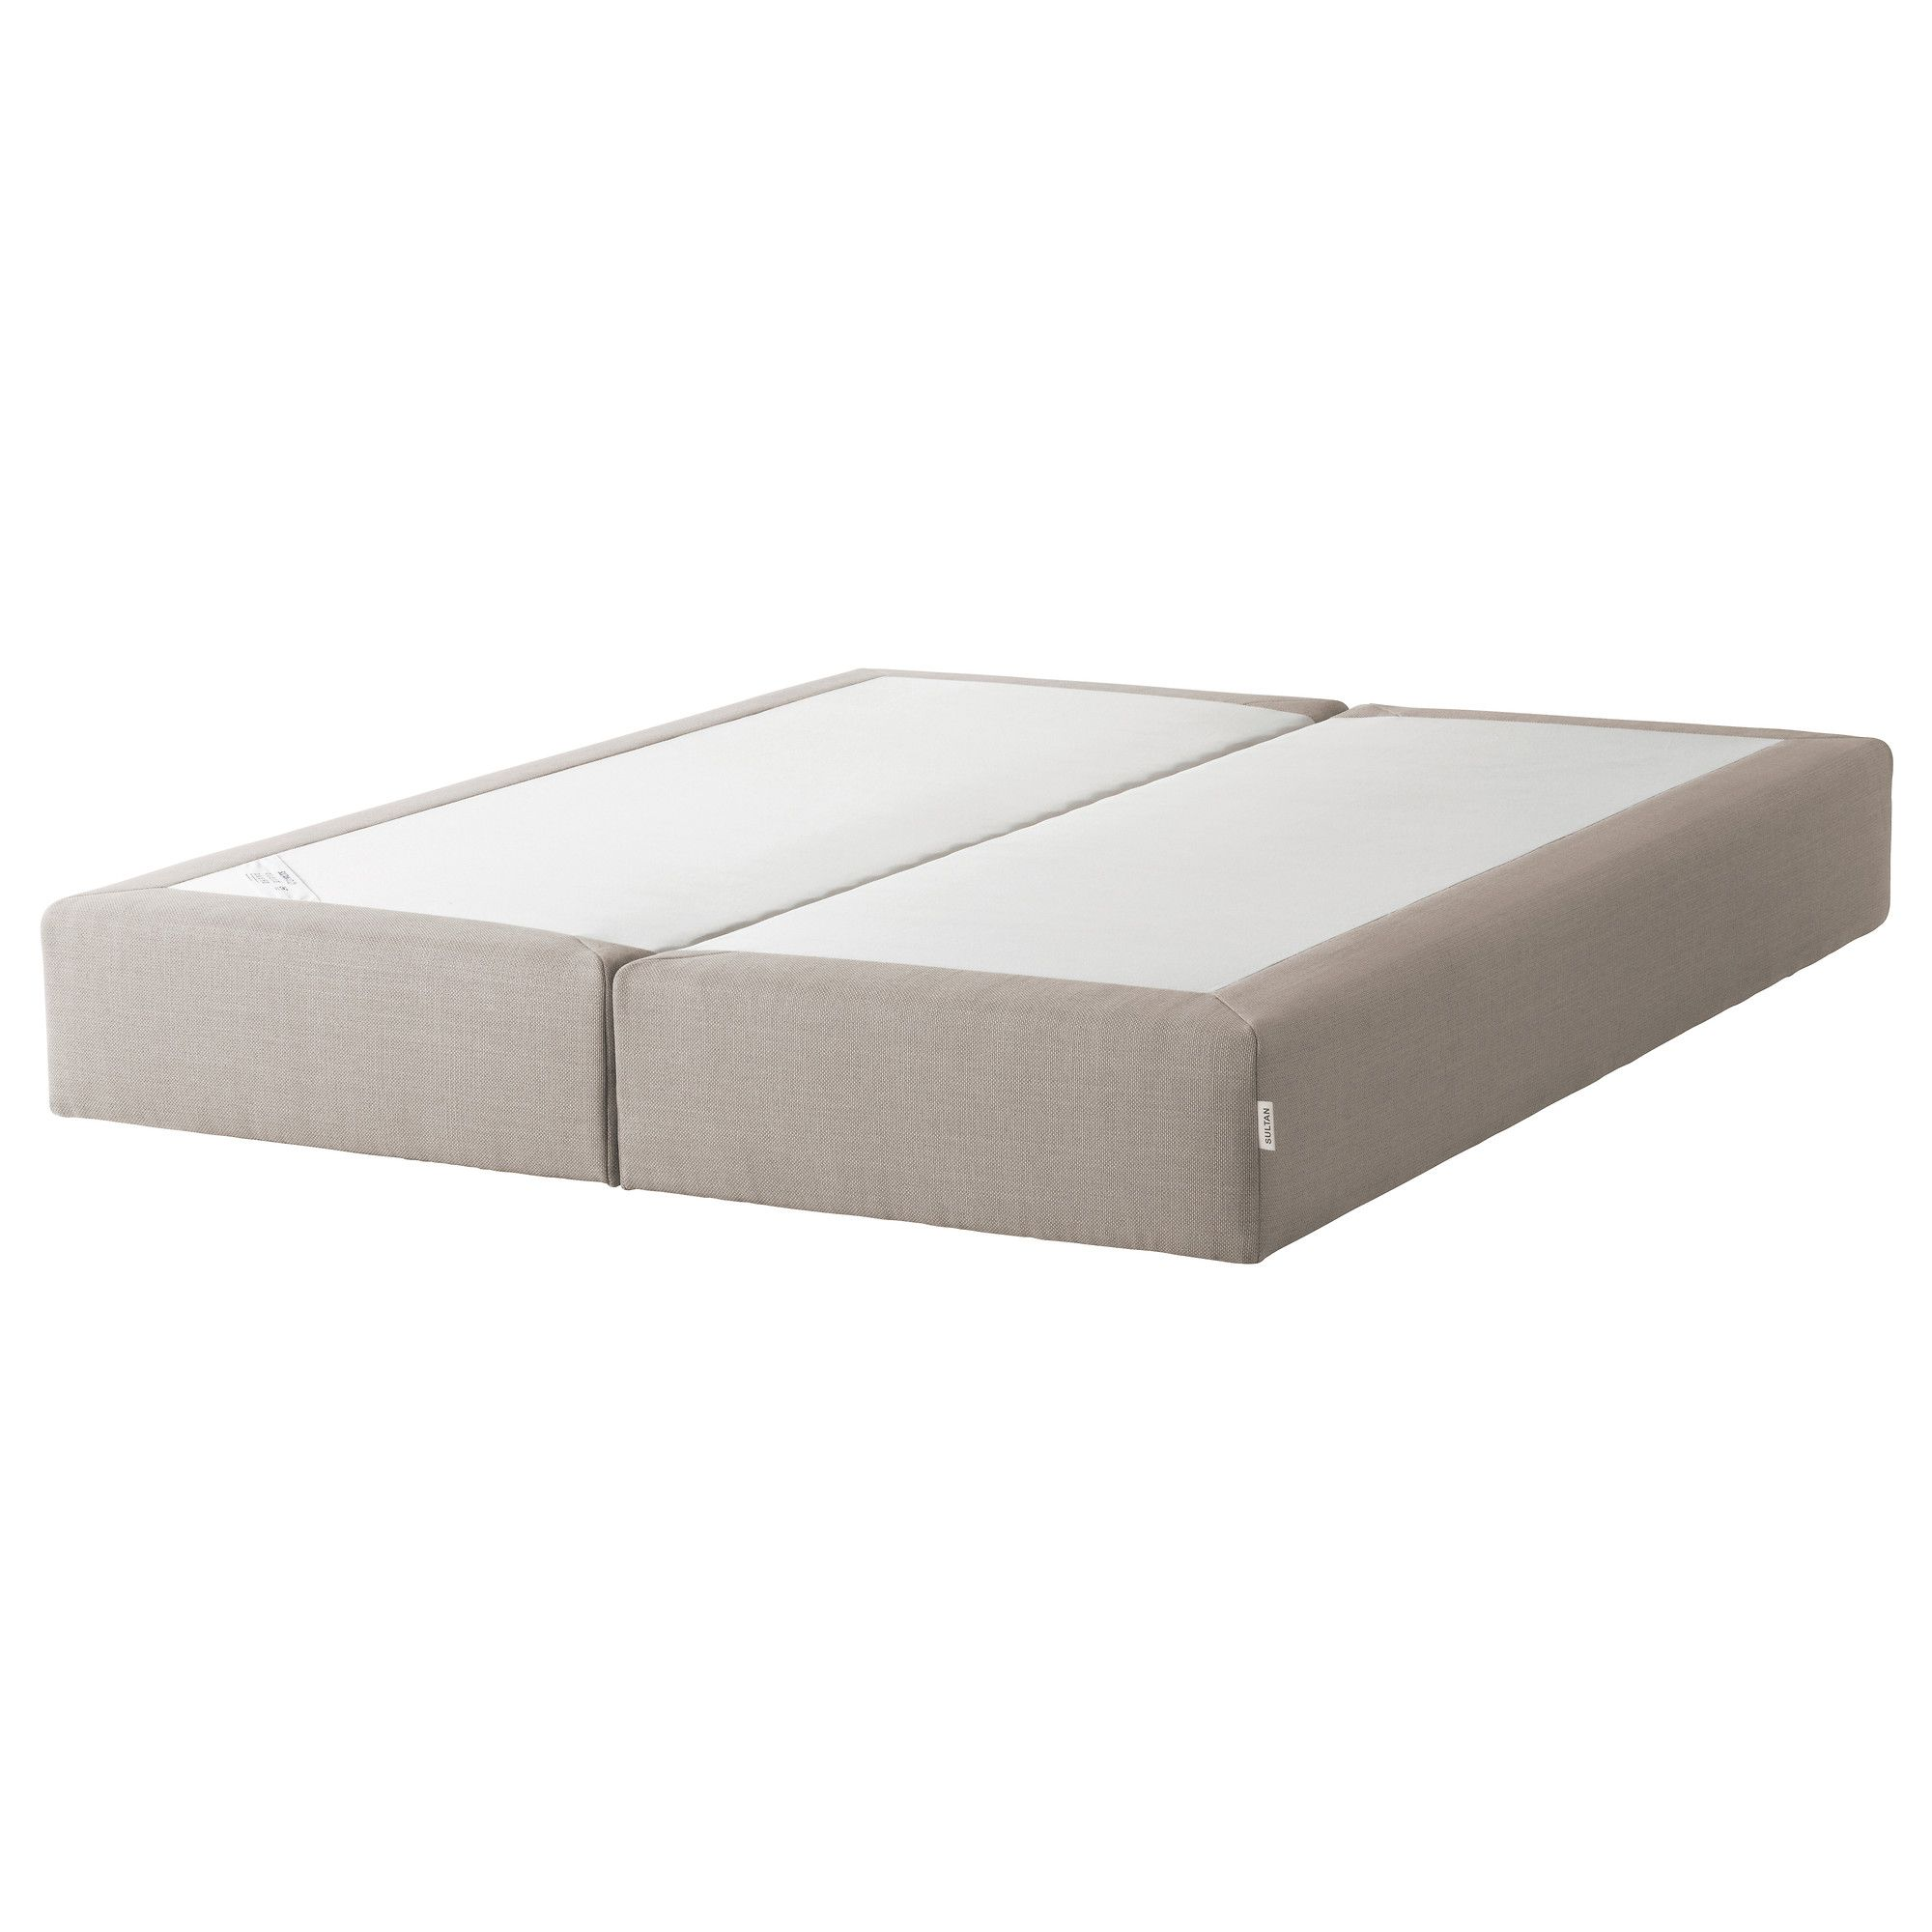 ikea costco ideas beds sofas frame cabinets morecabinets twin and mattress